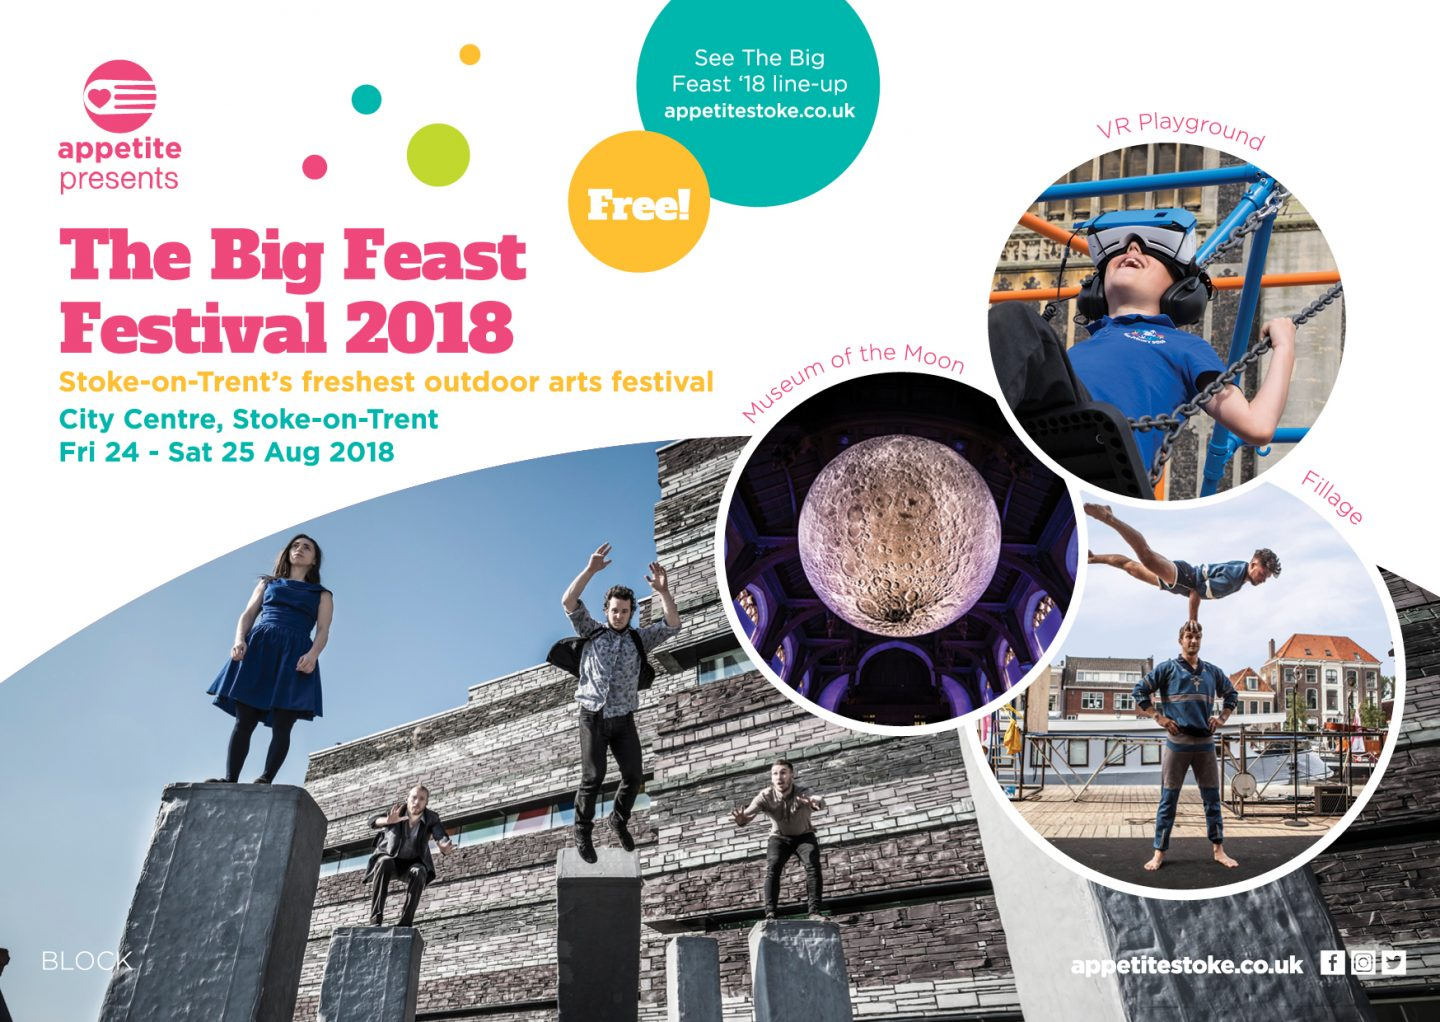 The Big Feast – Stoke-on-Trent's Tastiest Outdoor Arts Festival – Is Back!